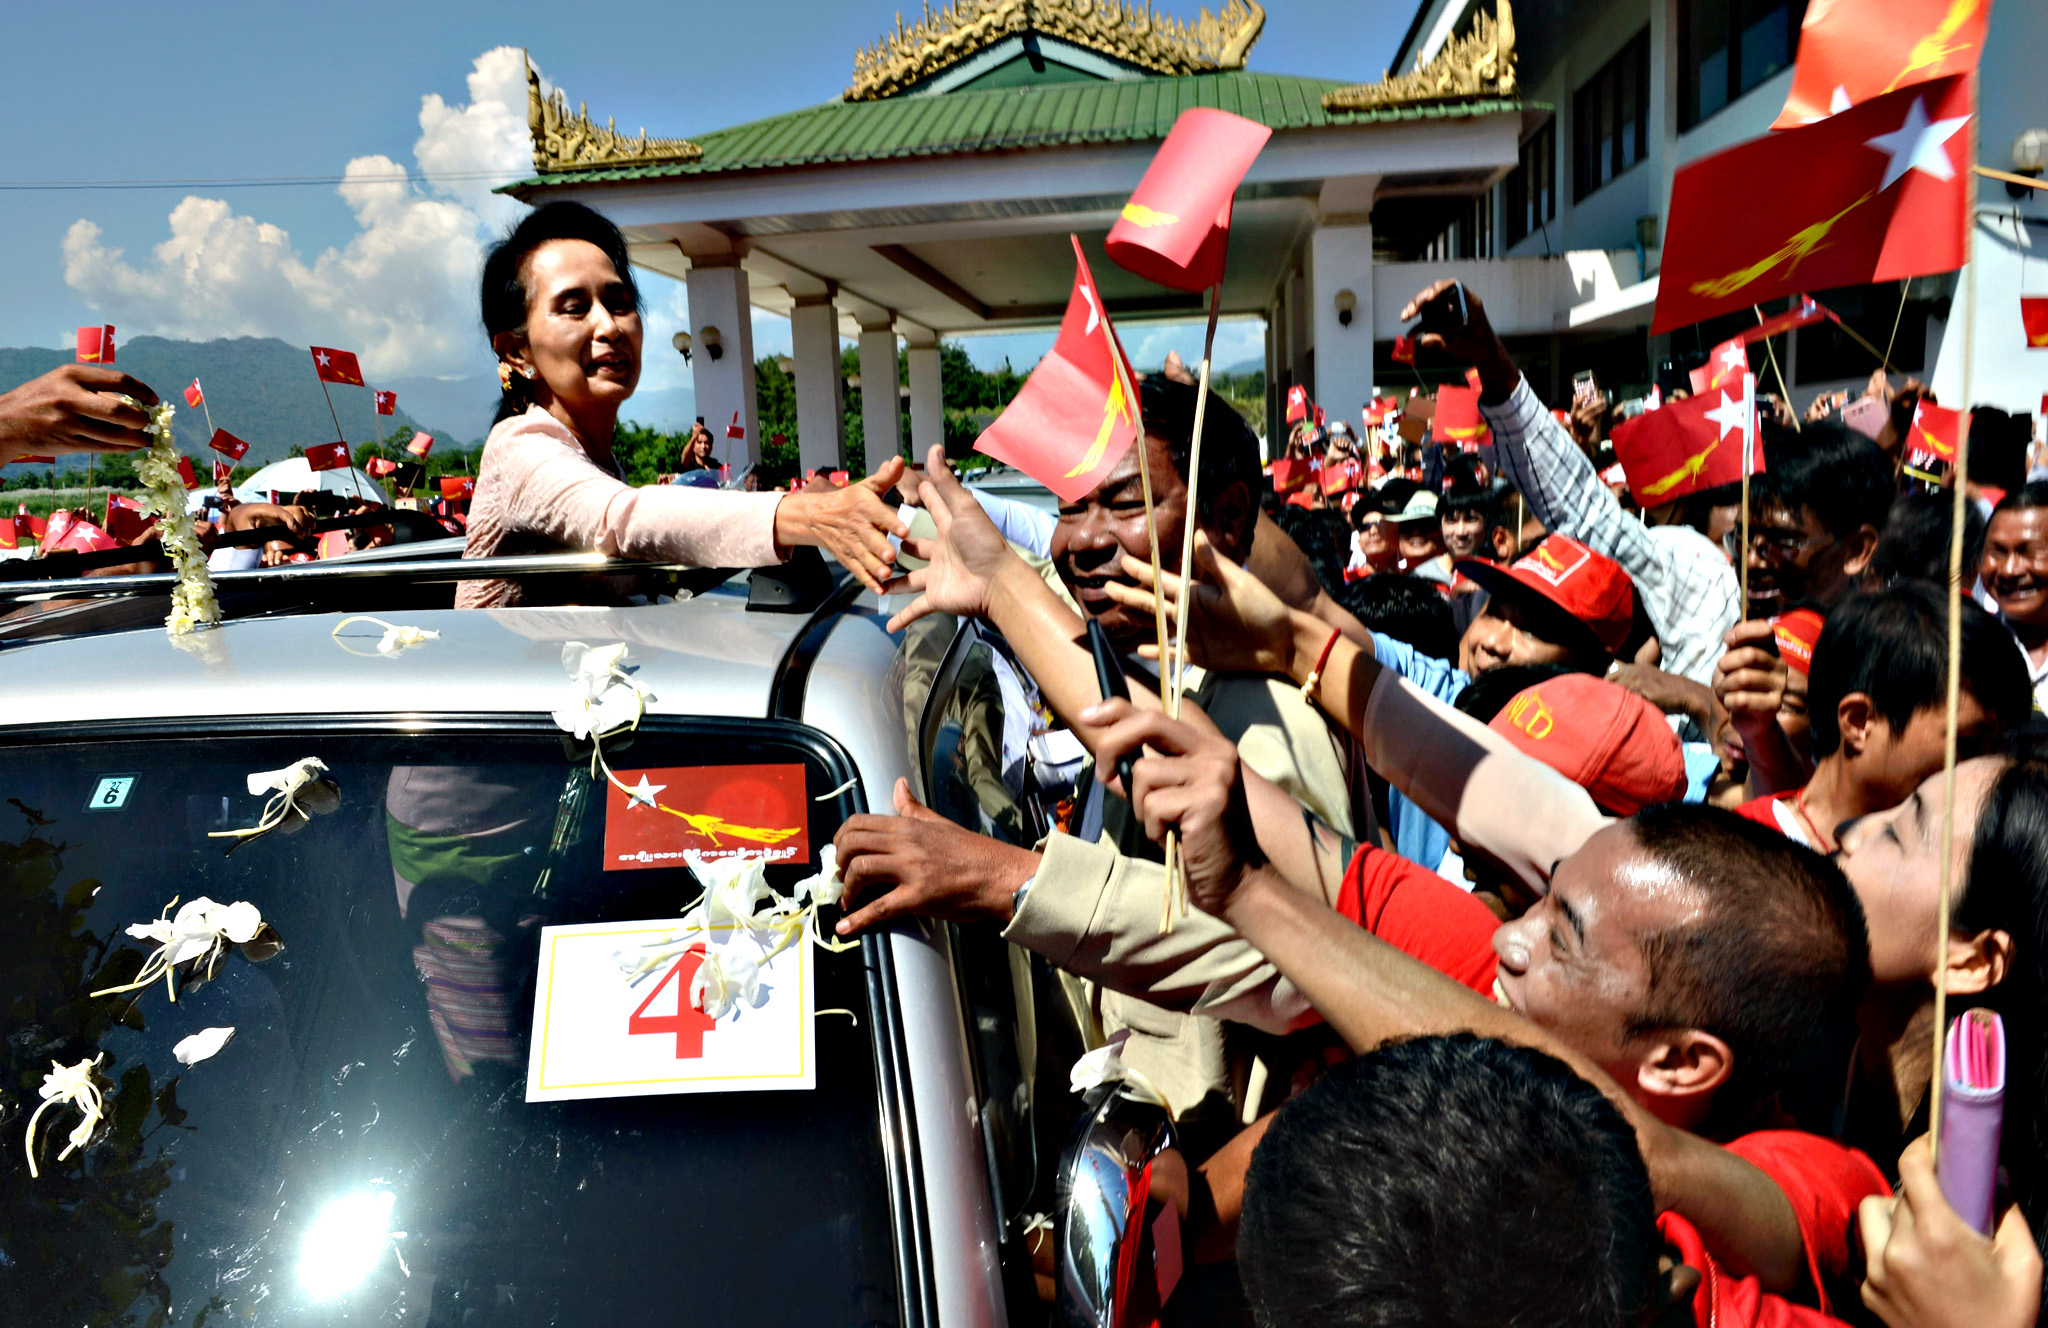 Myanmar opposition leader Aung San Suu Kyi  greets supporters and Shan ethnic minorities on arrival at Tachileik airport in Shan State to campaign for National League for Democracy (NLD) on October 21, 2015.  European Union observers will be given access to voting on military bases for next month's Myanmar election, an official said, a move to bolster oversight of a poll billed as the country's fairest in decades.